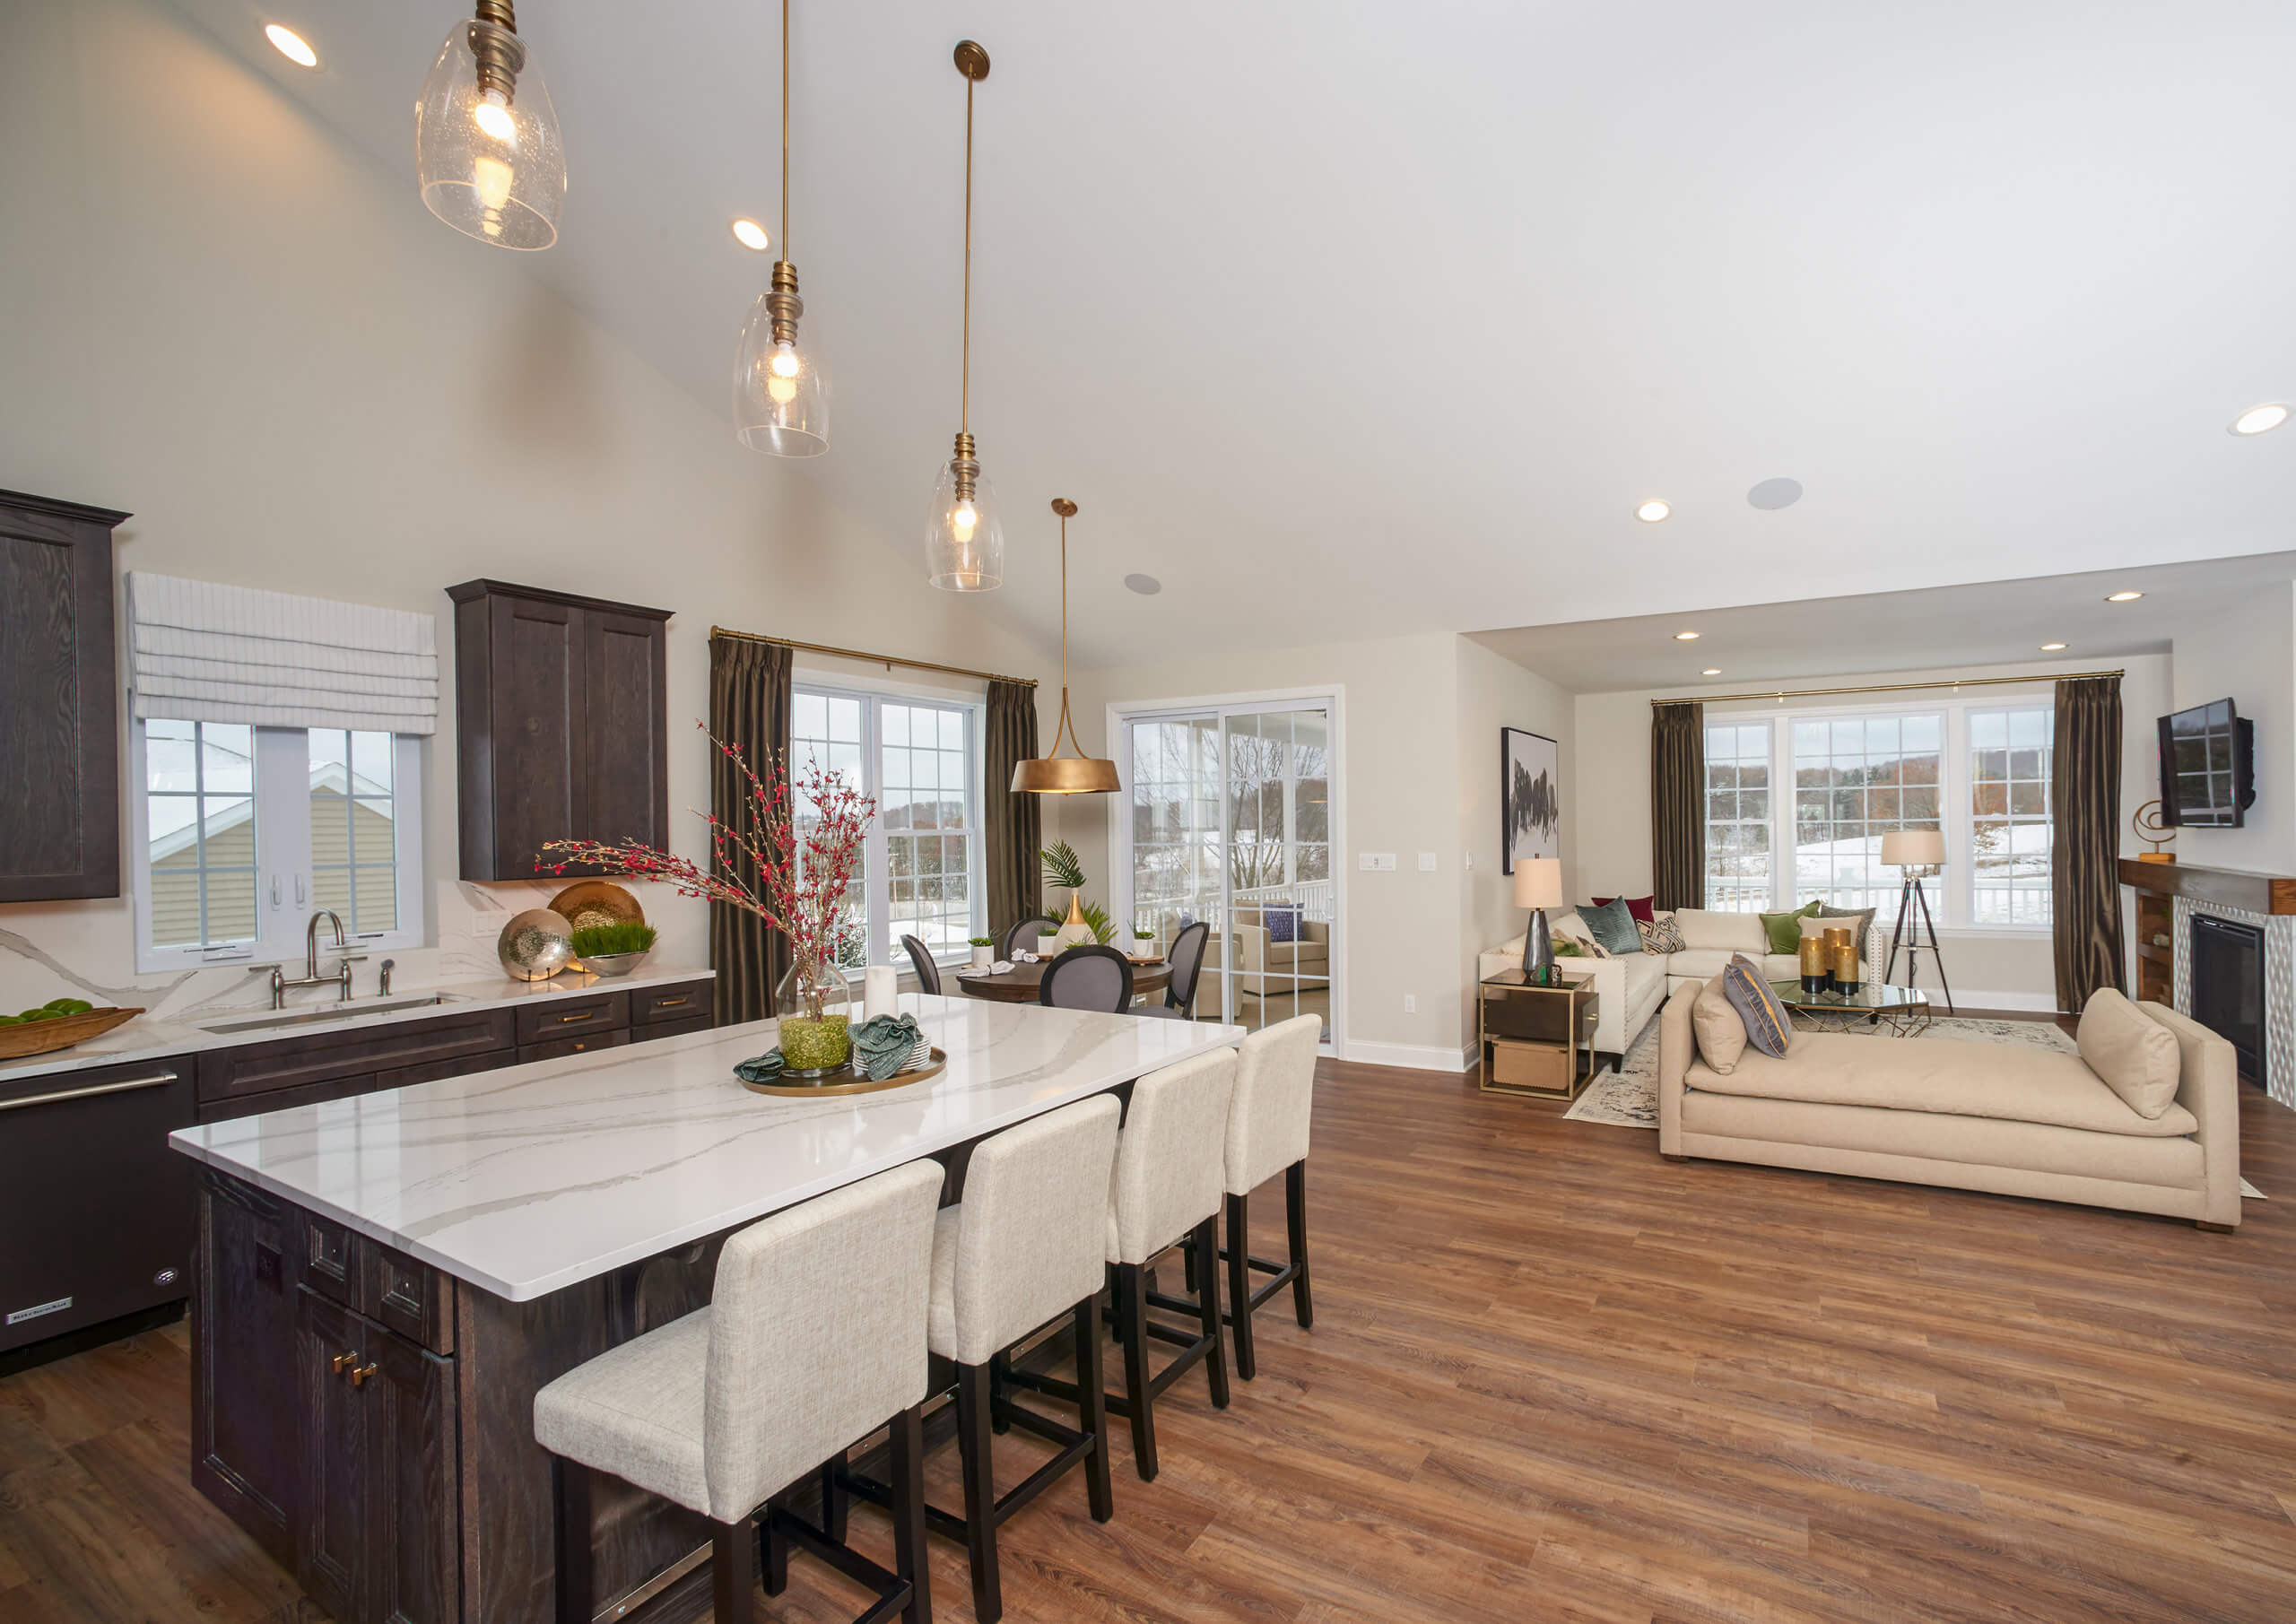 Home-cooked meals and casual entertaining are a breeze when your kitchen looks like Hancock Model